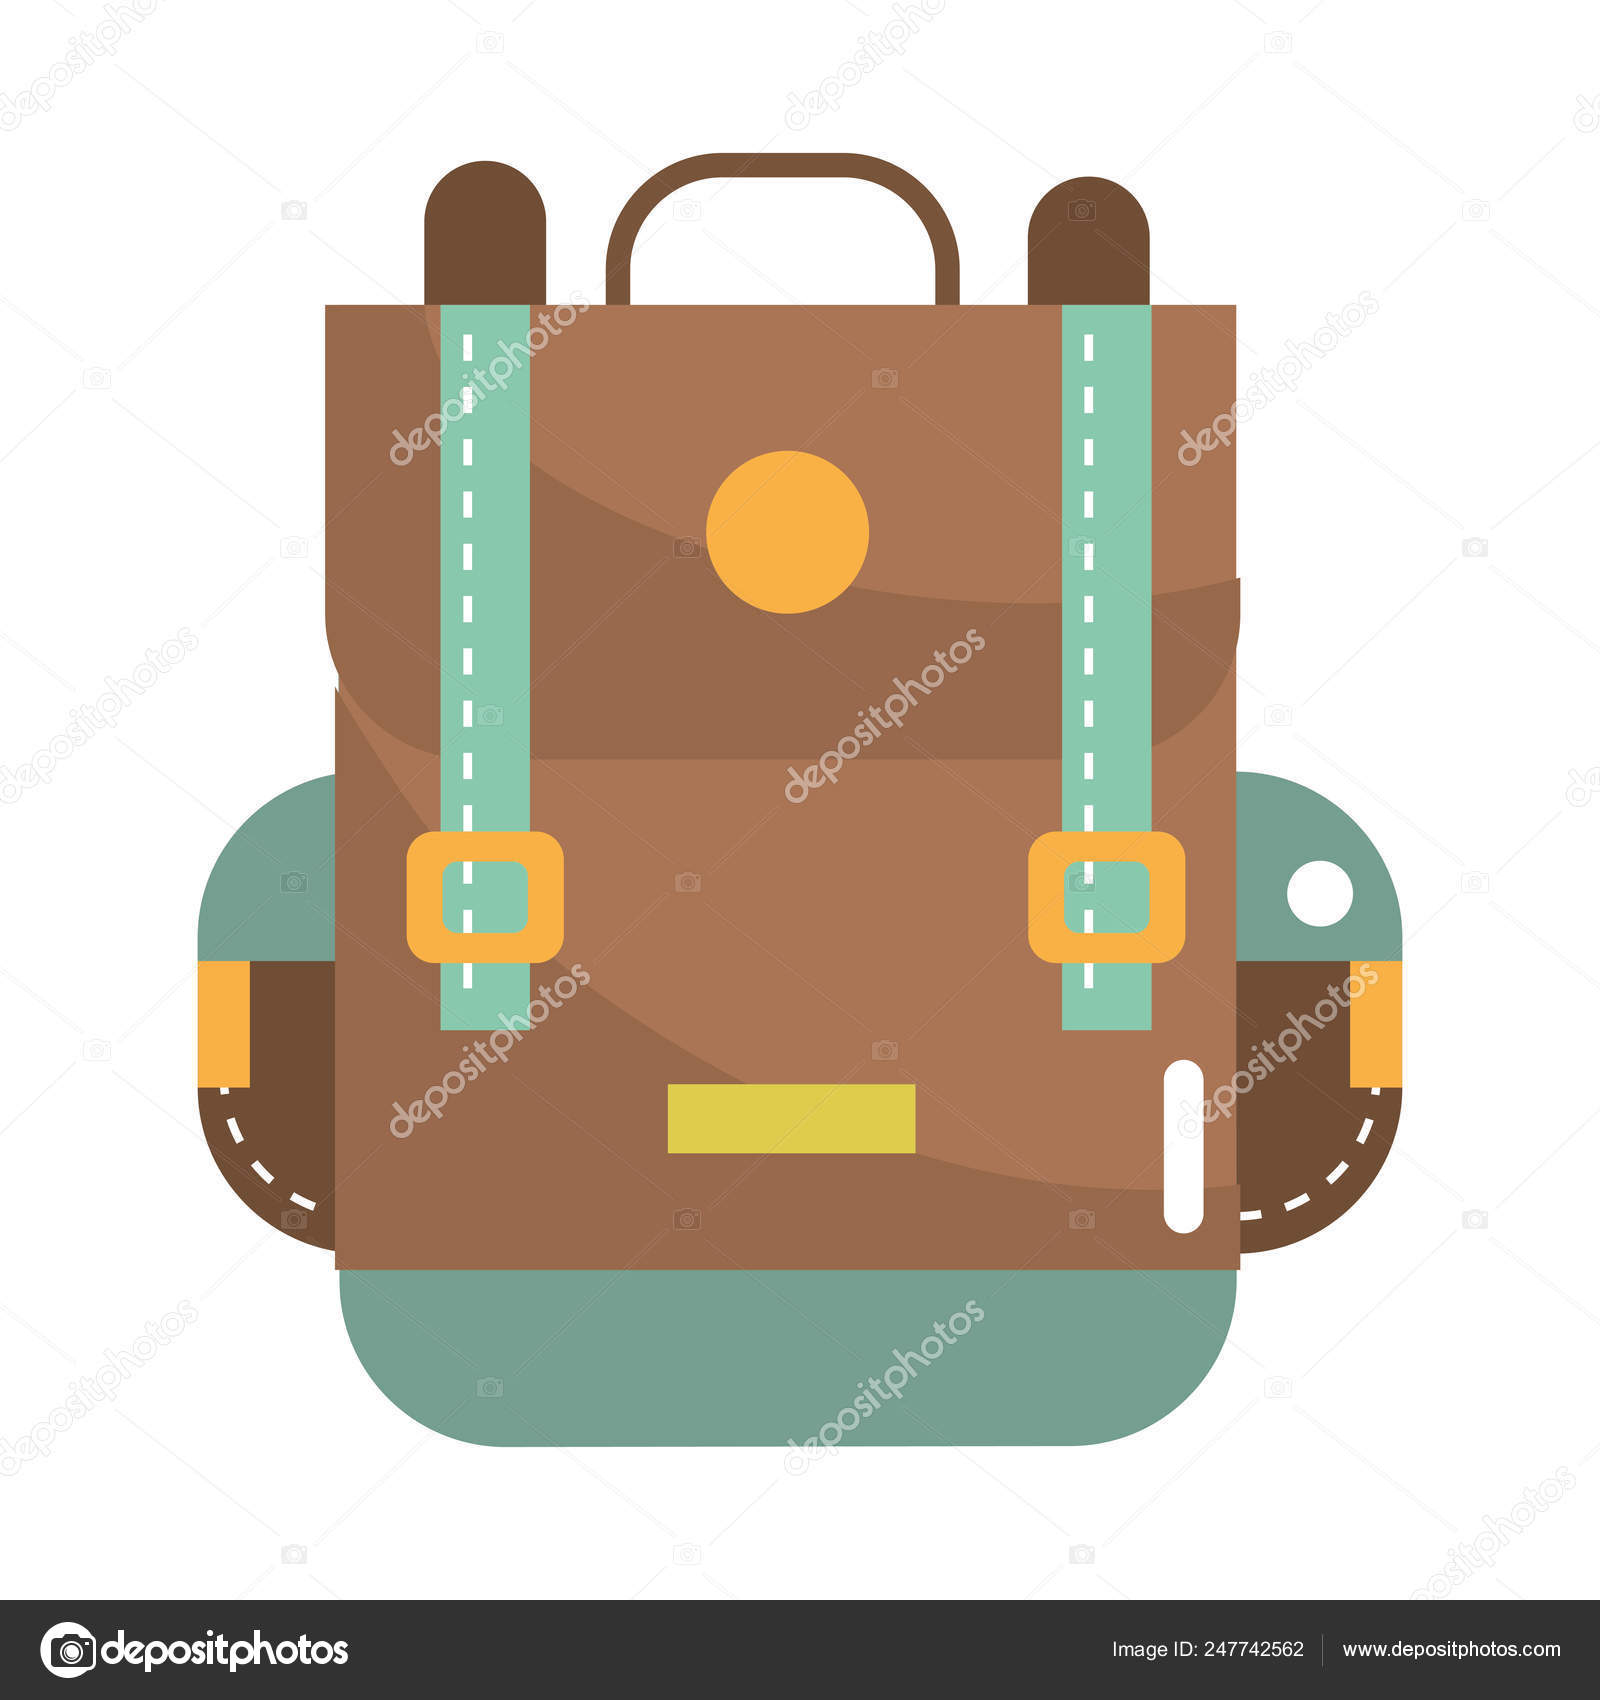 Travel Backpack Cartoon Stock Vector C Stockgiu 247742562